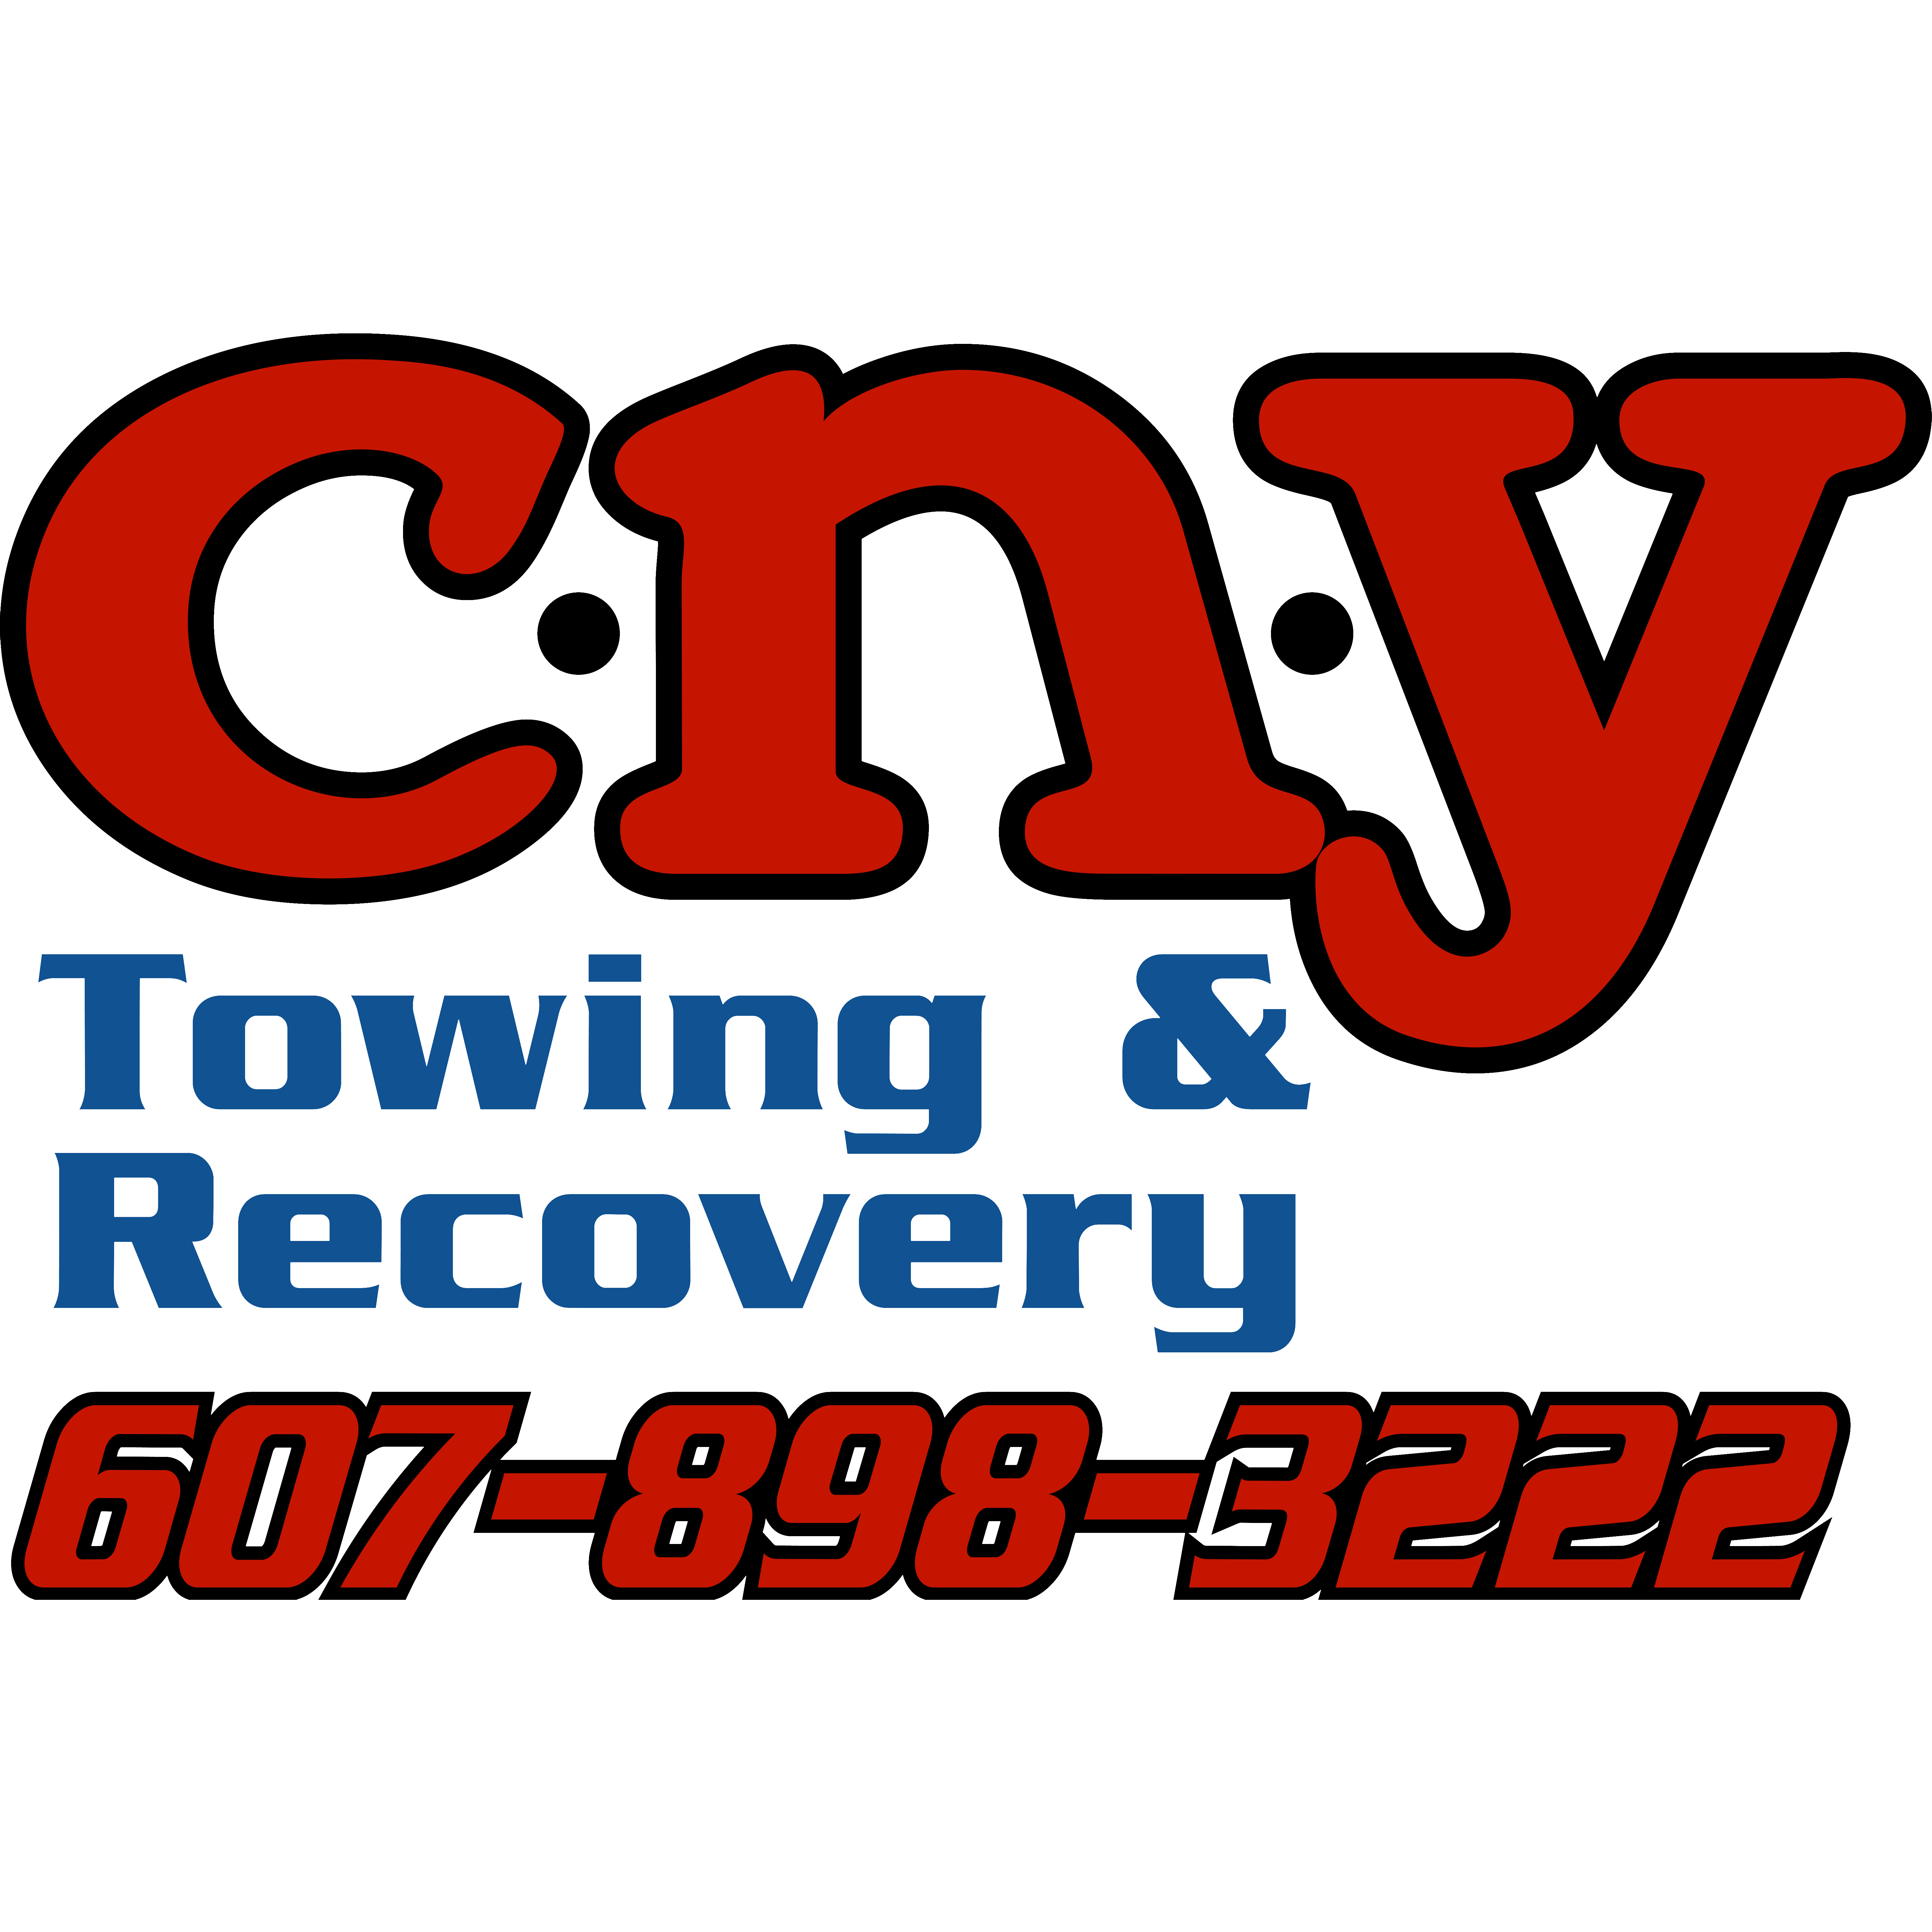 CNY Towing & Recovery